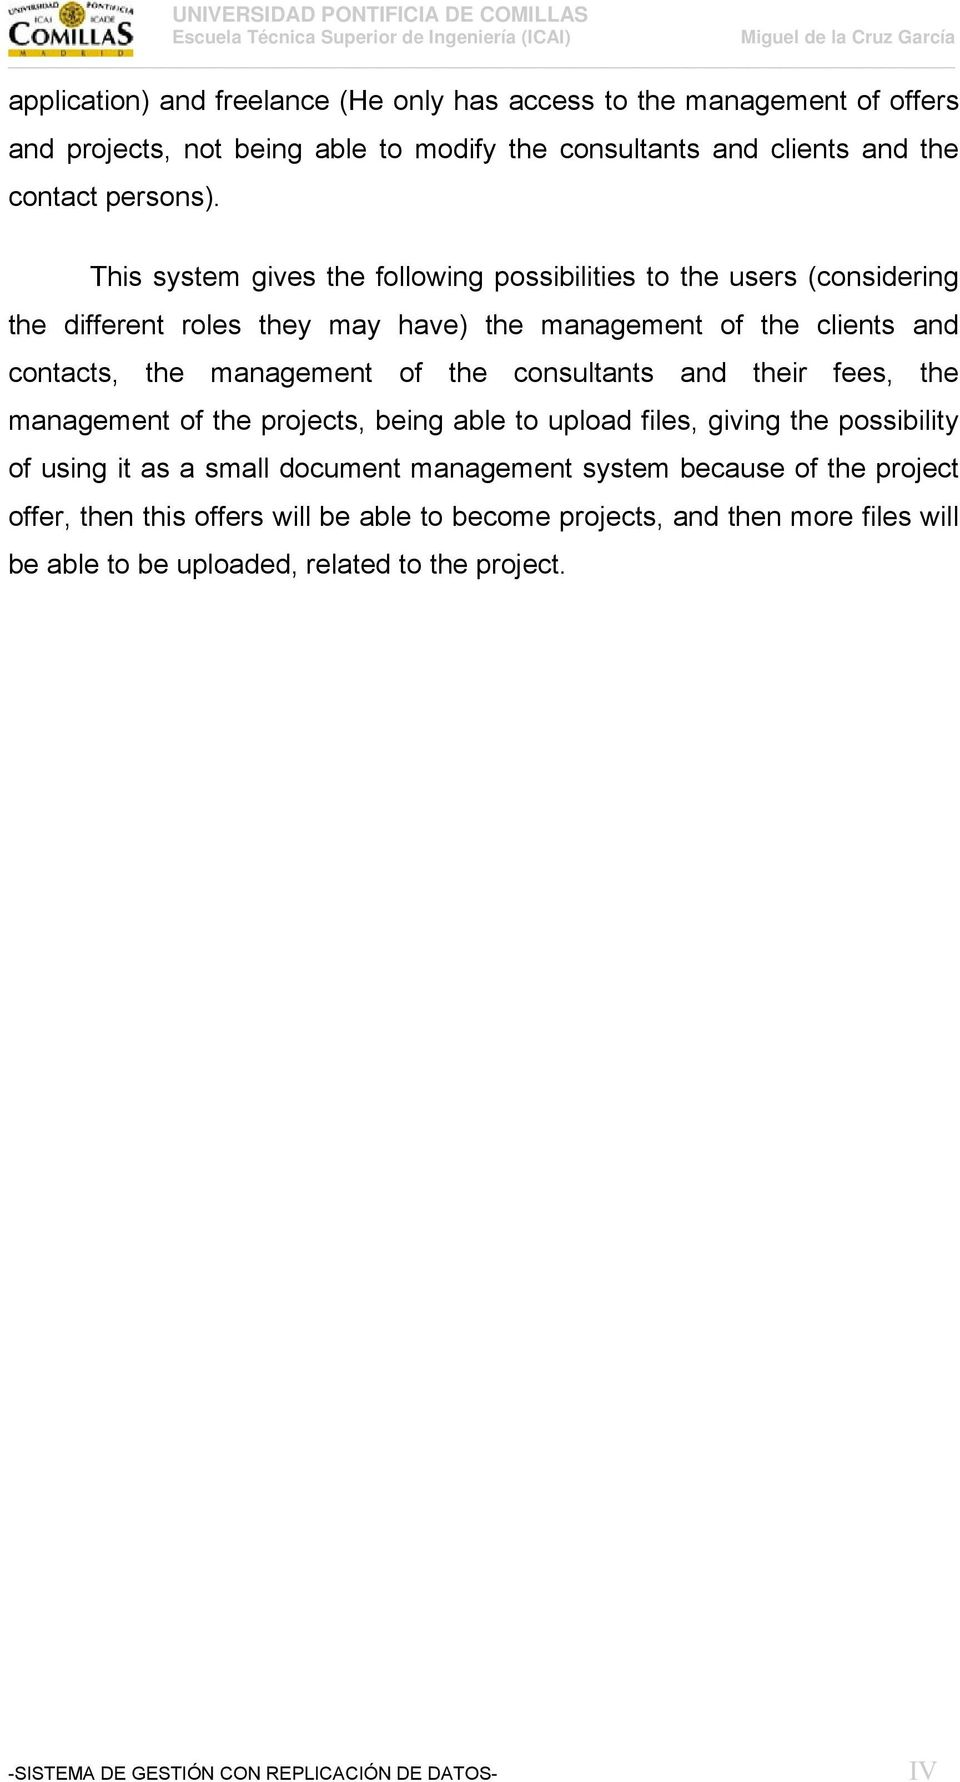 consultants and their fees, the management of the projects, being able to upload files, giving the possibility of using it as a small document management system because of the